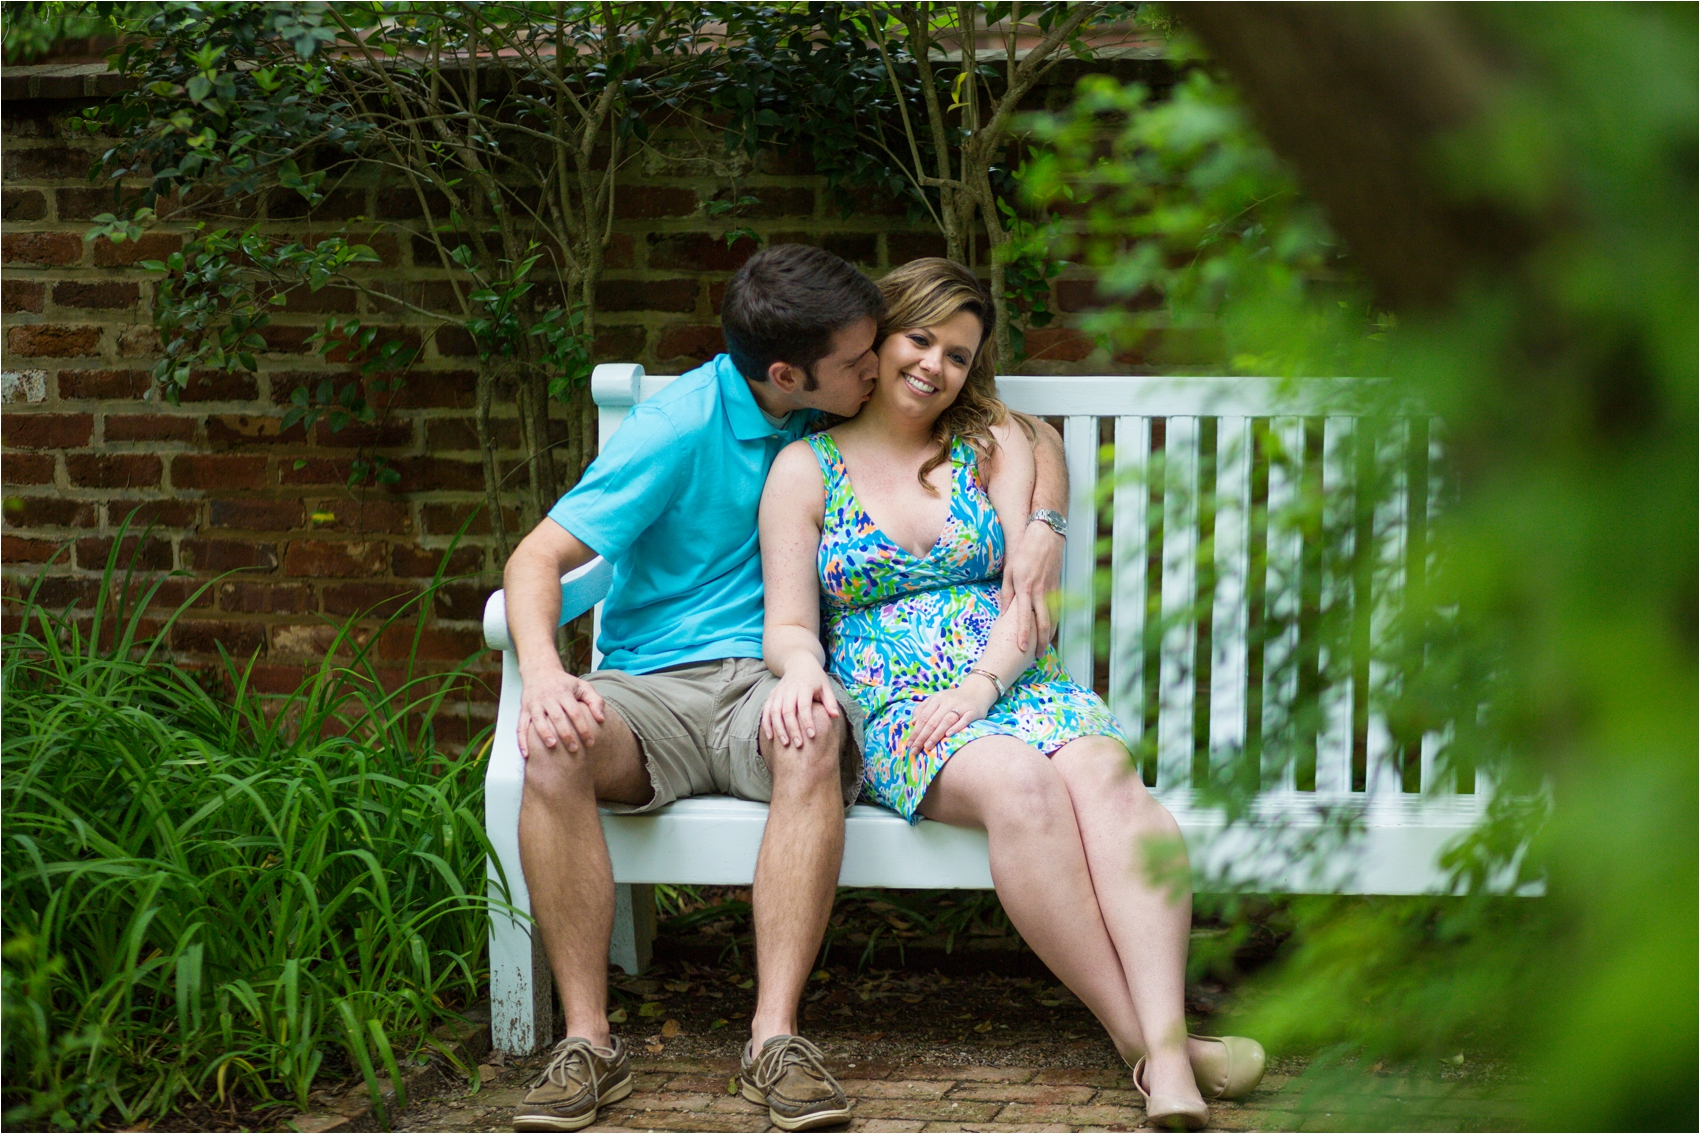 Charlottesville-Virginia-Spring-Engagement-Session-4880.jpg